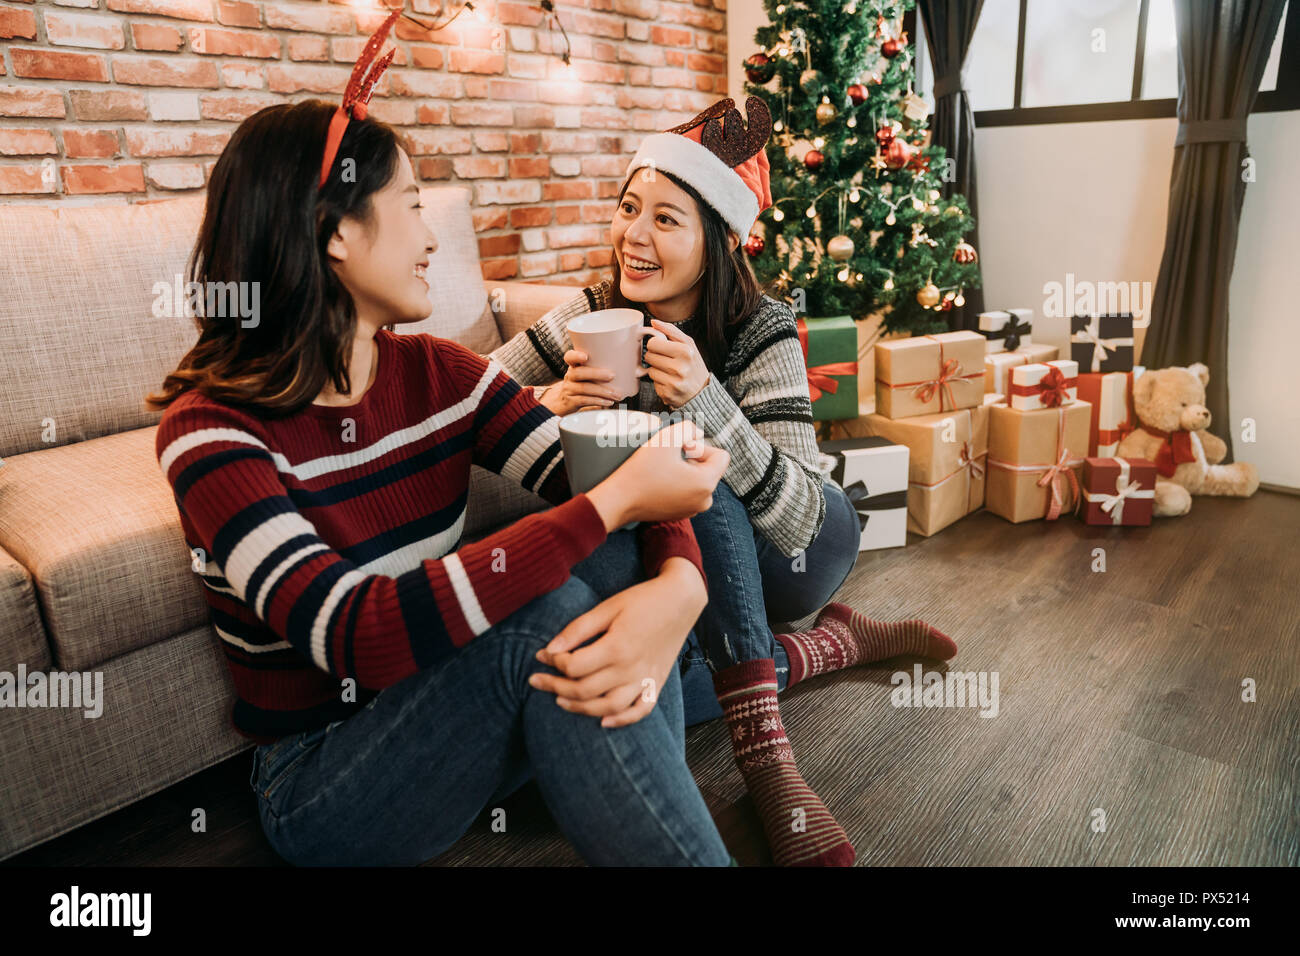 beautiful girlfriends christmas celebration enjoy mulled wine at home saying merry christmas and happy new